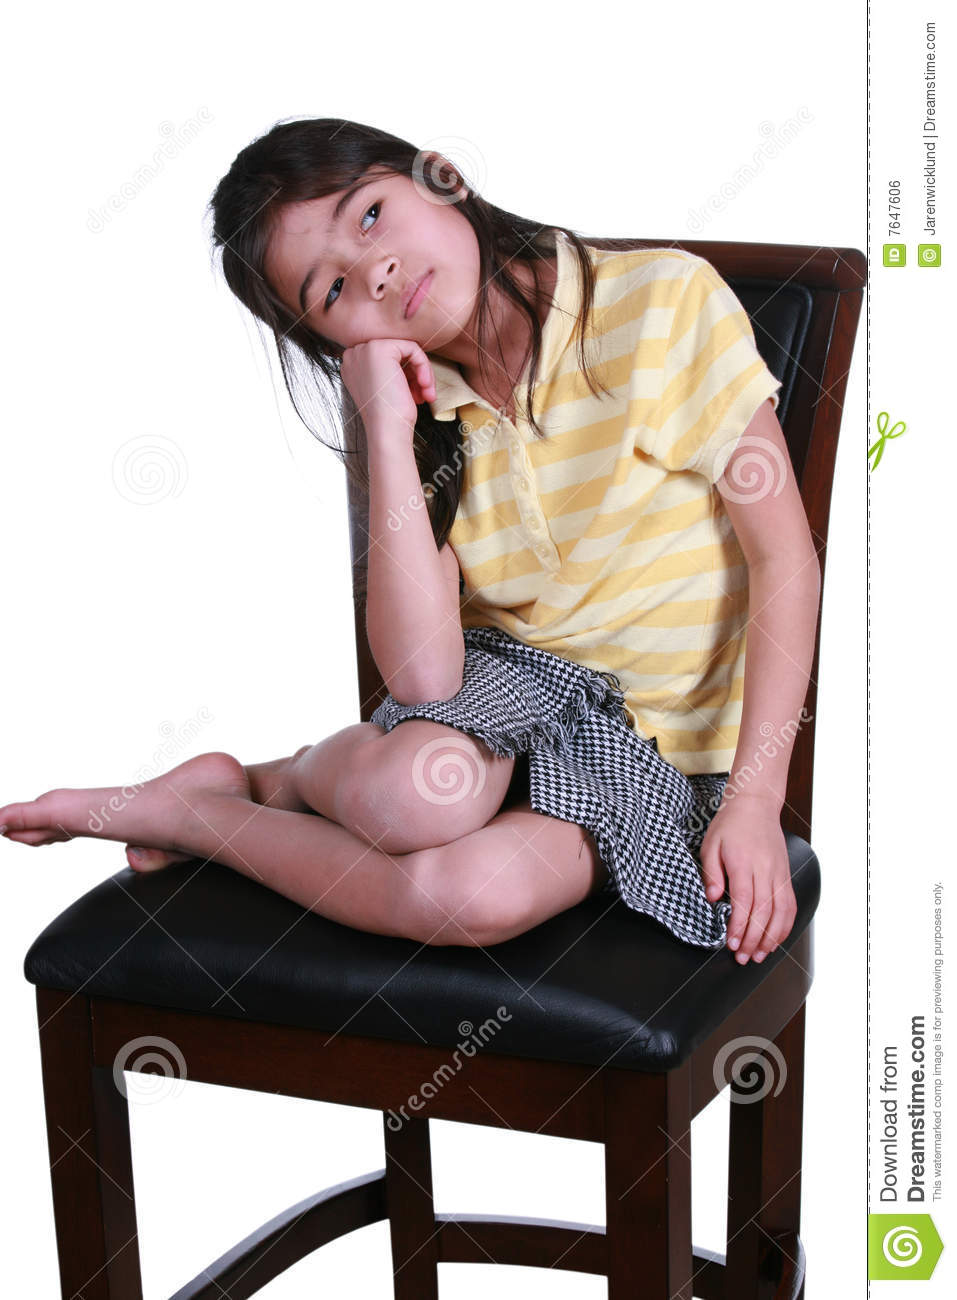 Sad Girl Sitting On Chair Stock Photo Image Of Resting